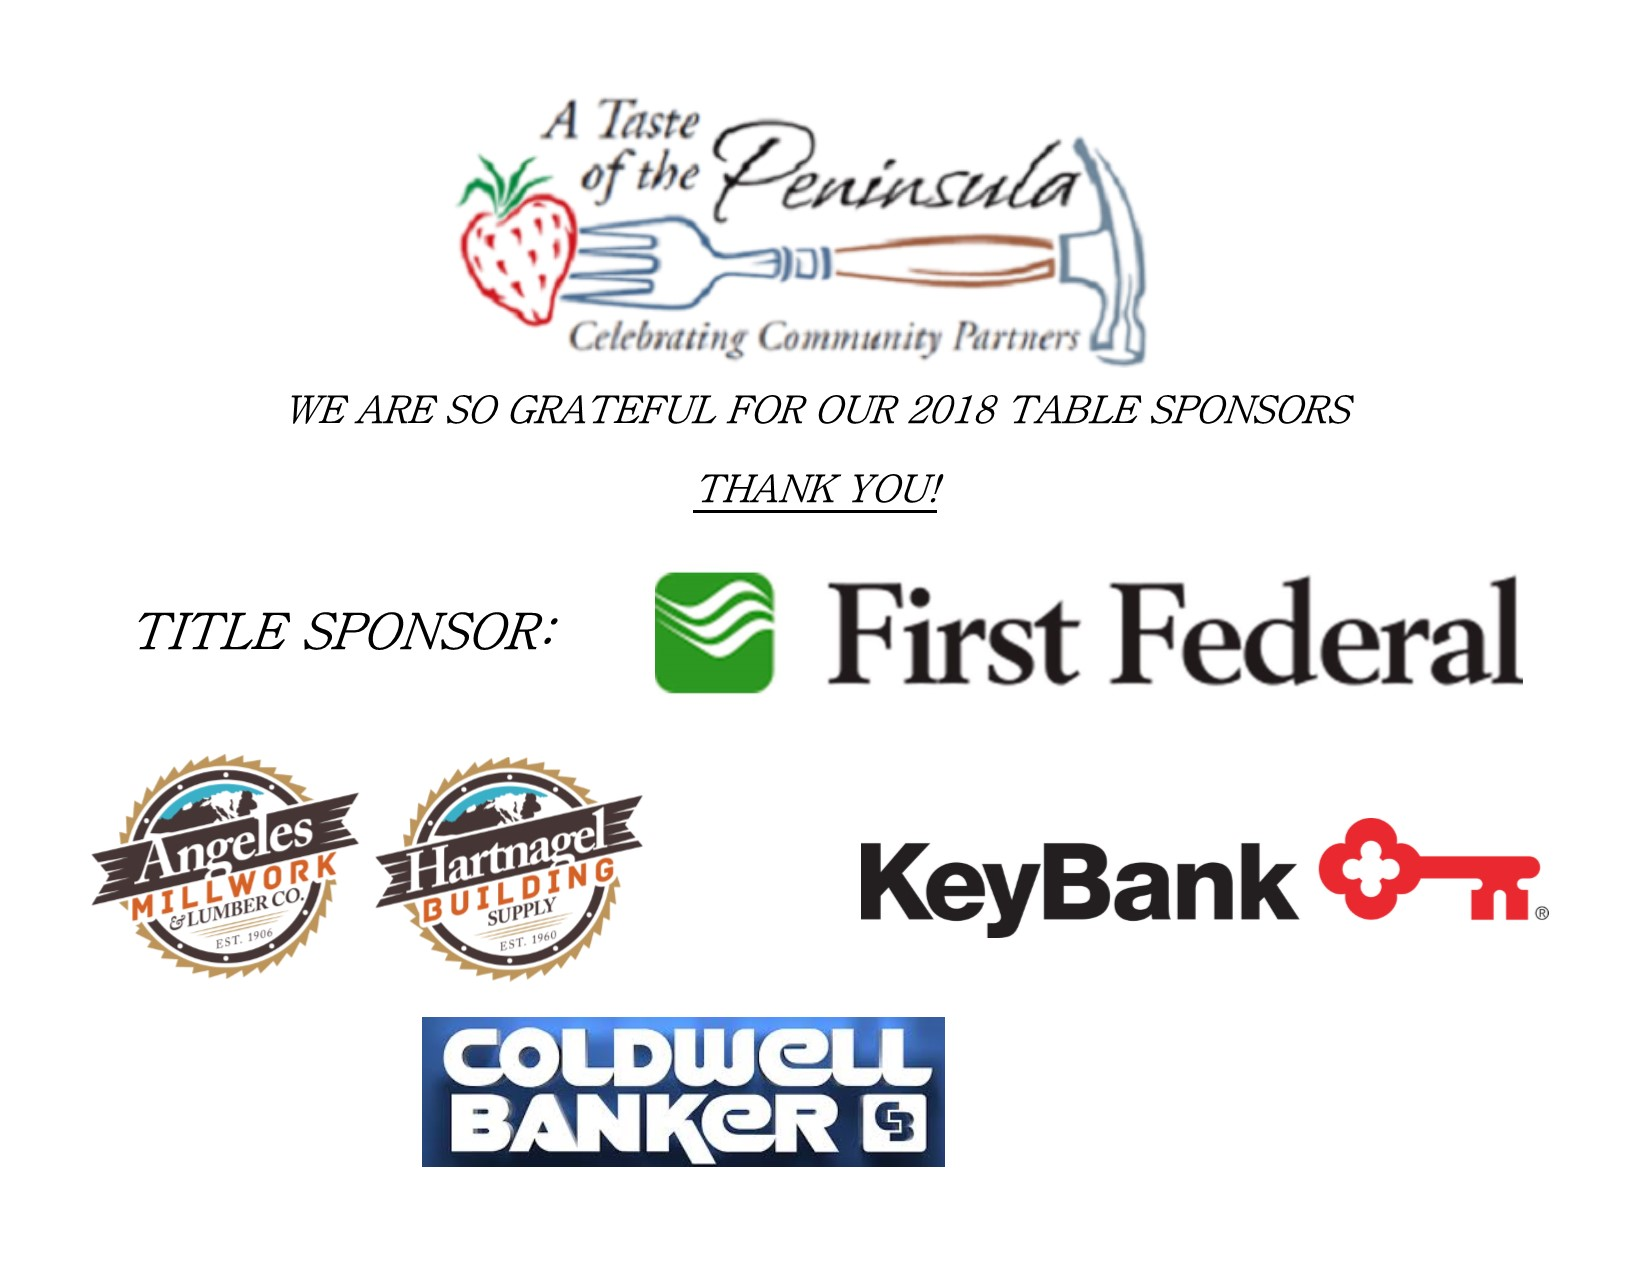 2018 A Taste of the Peninsula Table Sponsors